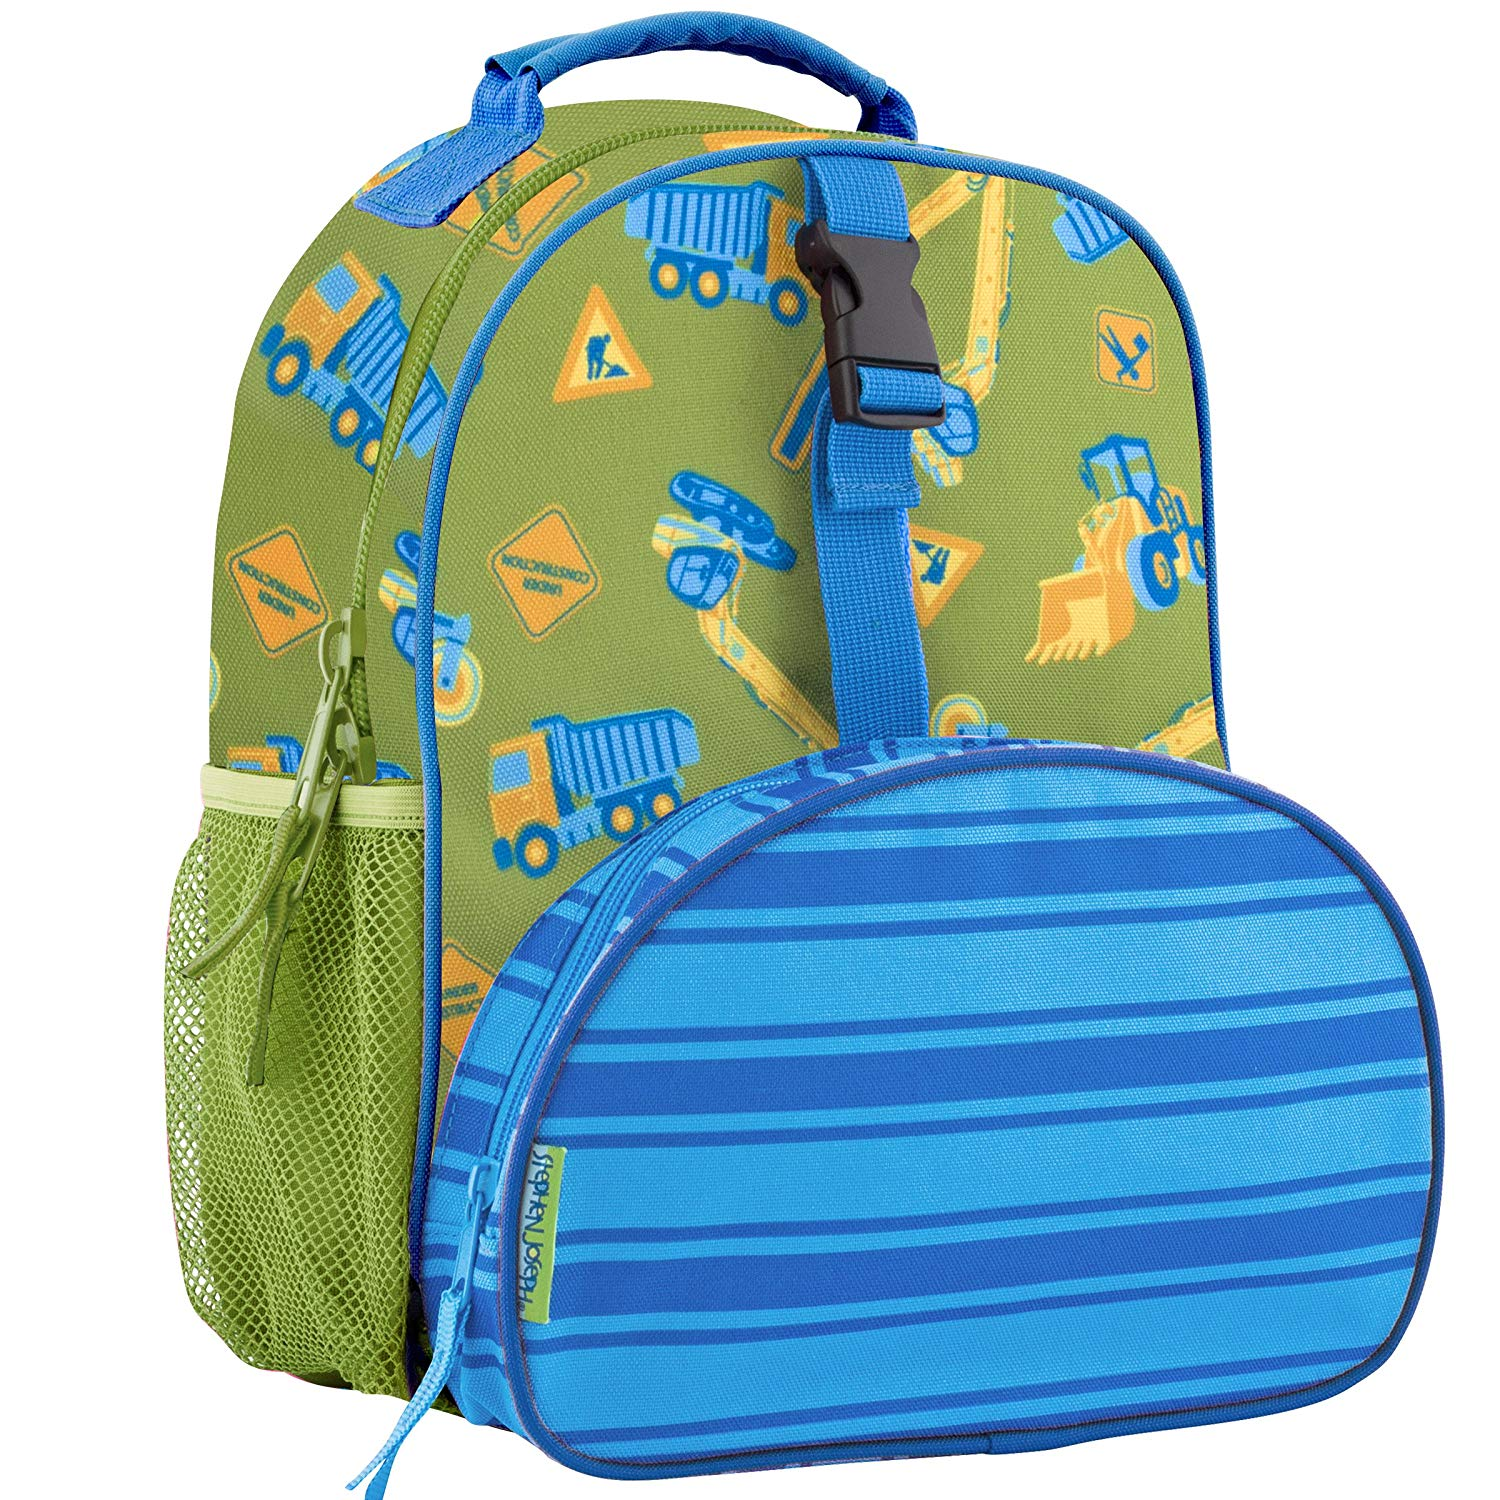 debee07cc5 Get Quotations · Stephen Joseph All Over Print Mini Backpack